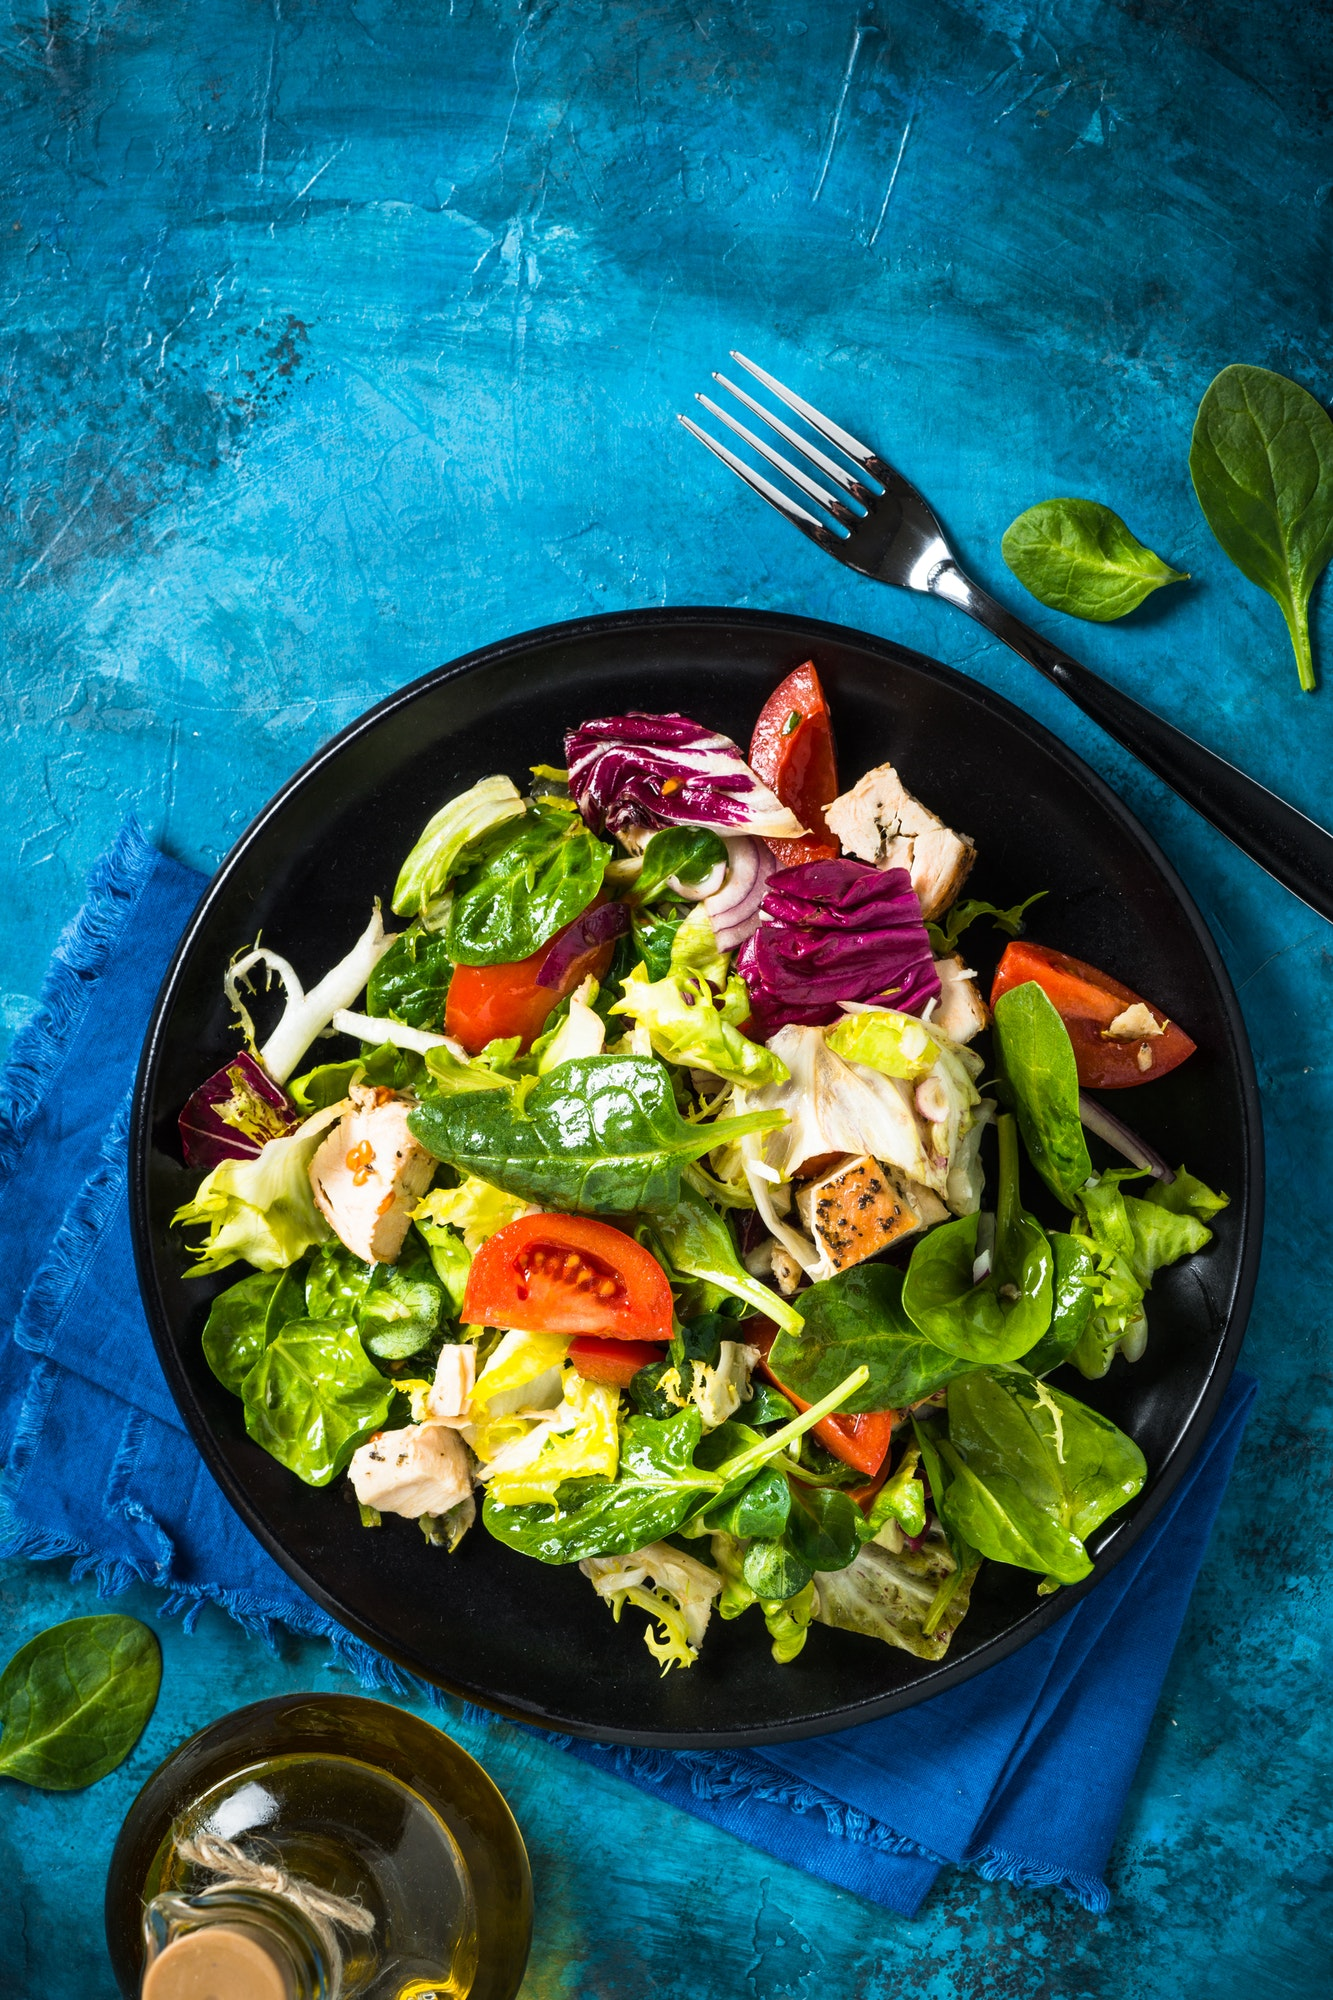 Green salad with chicken and vegetables top view